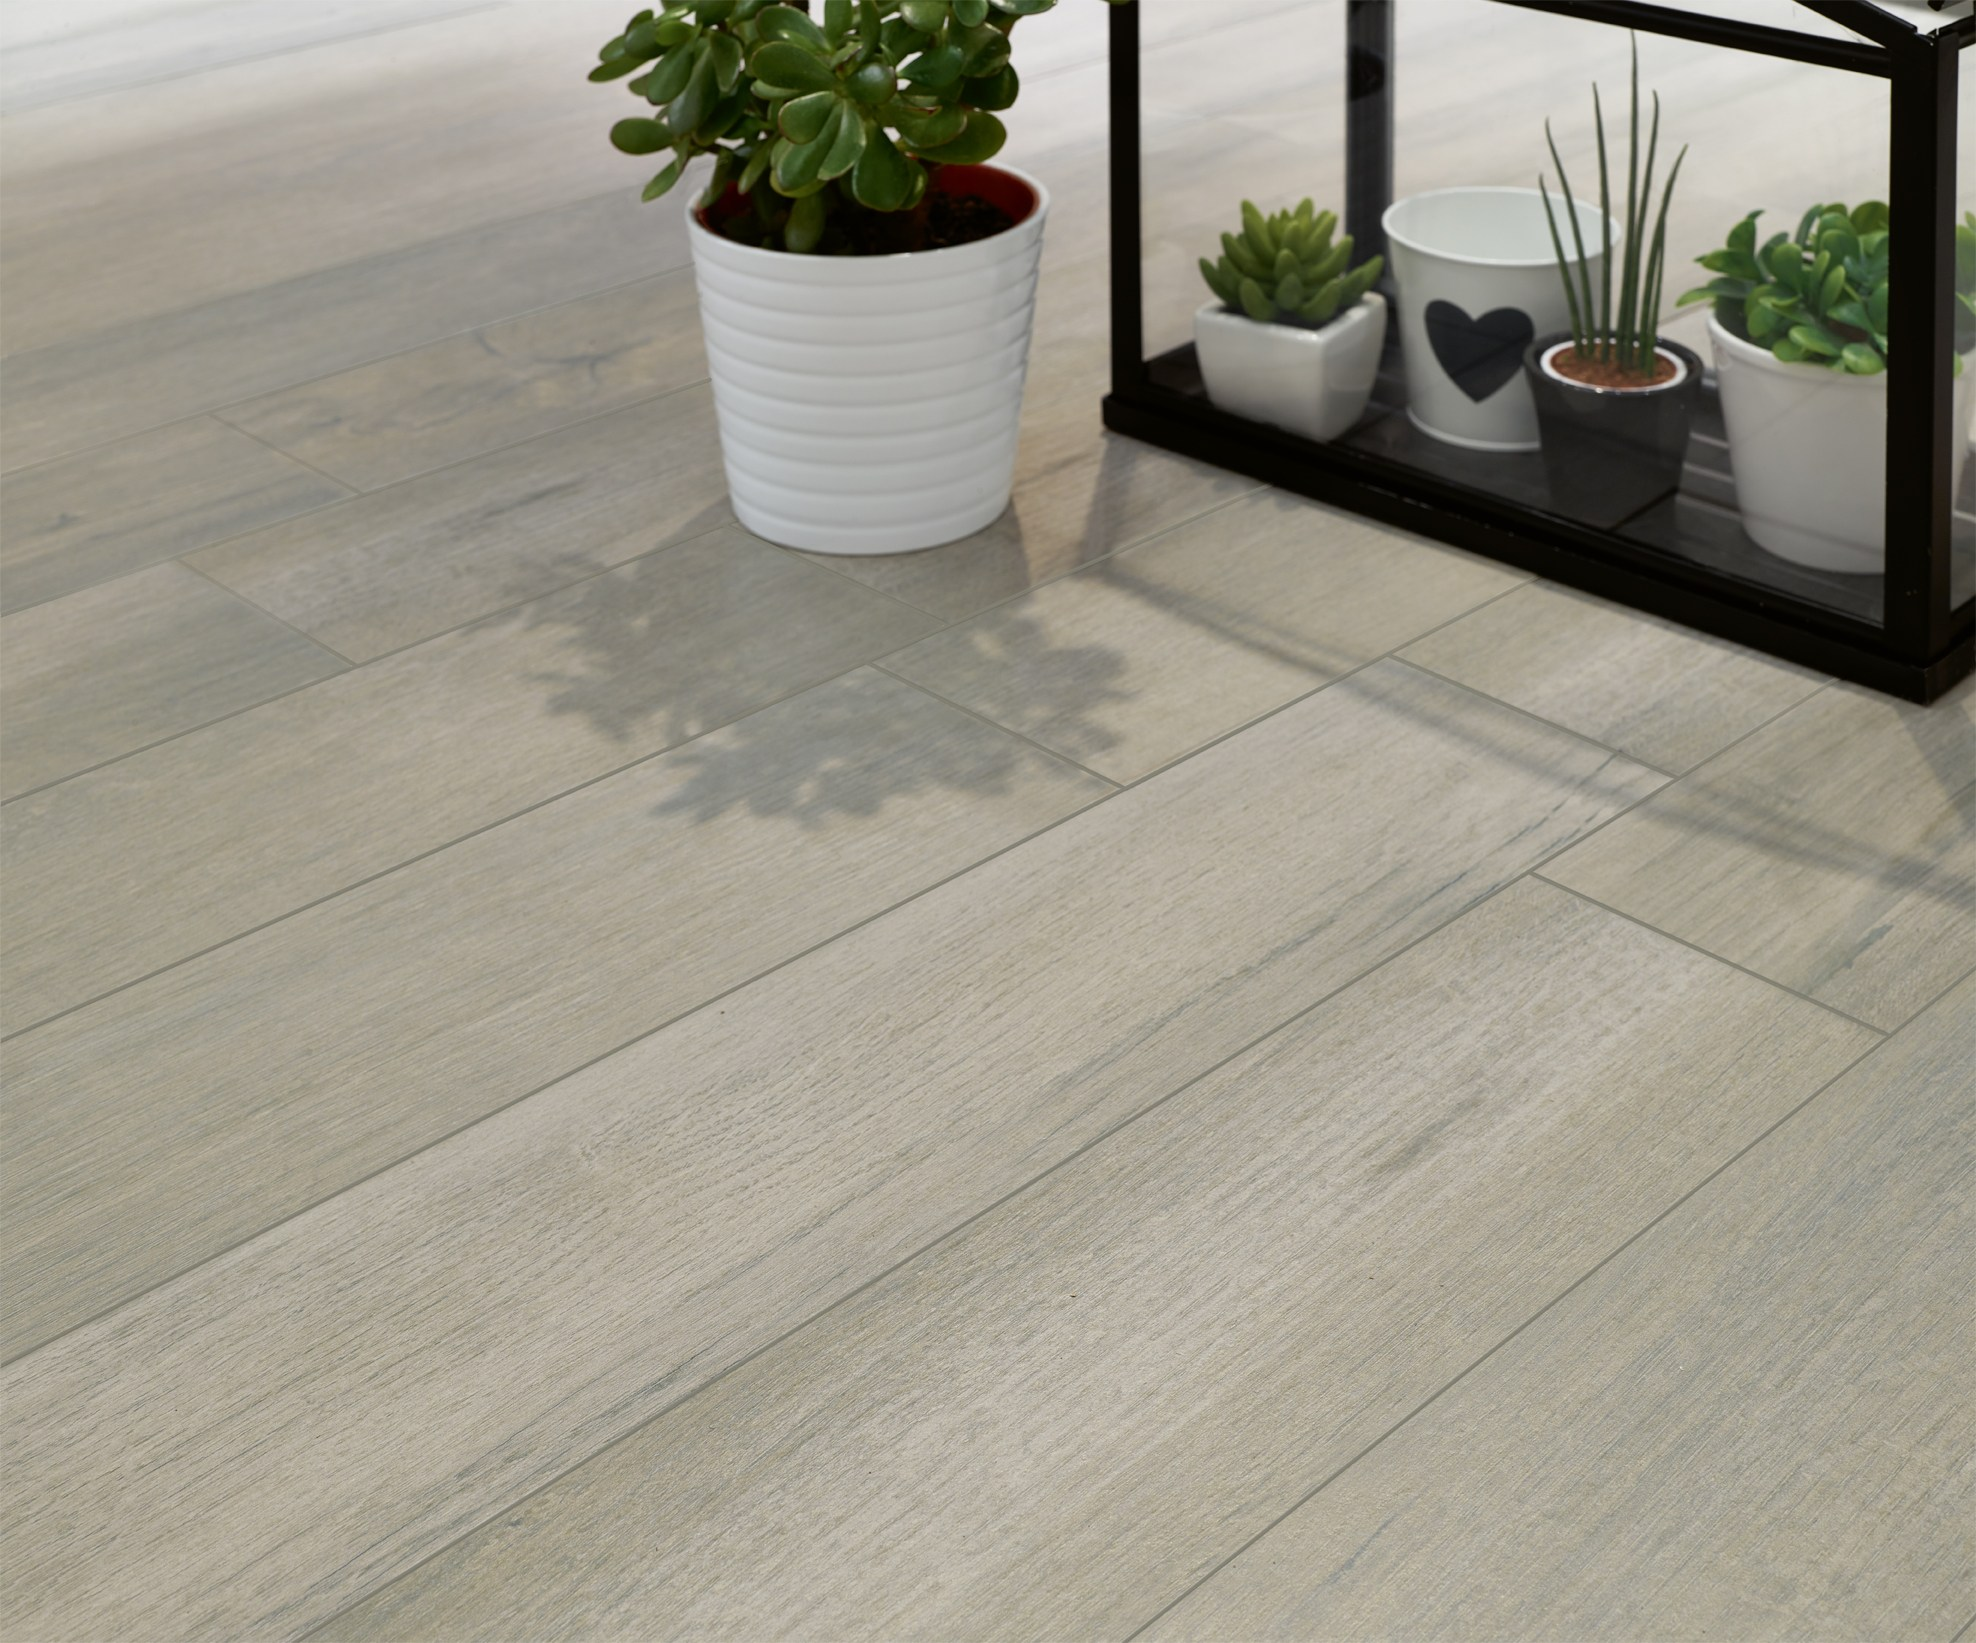 Porcelain stoneware wall tiles / flooring FUSION by LOVE CERAMIC TILES